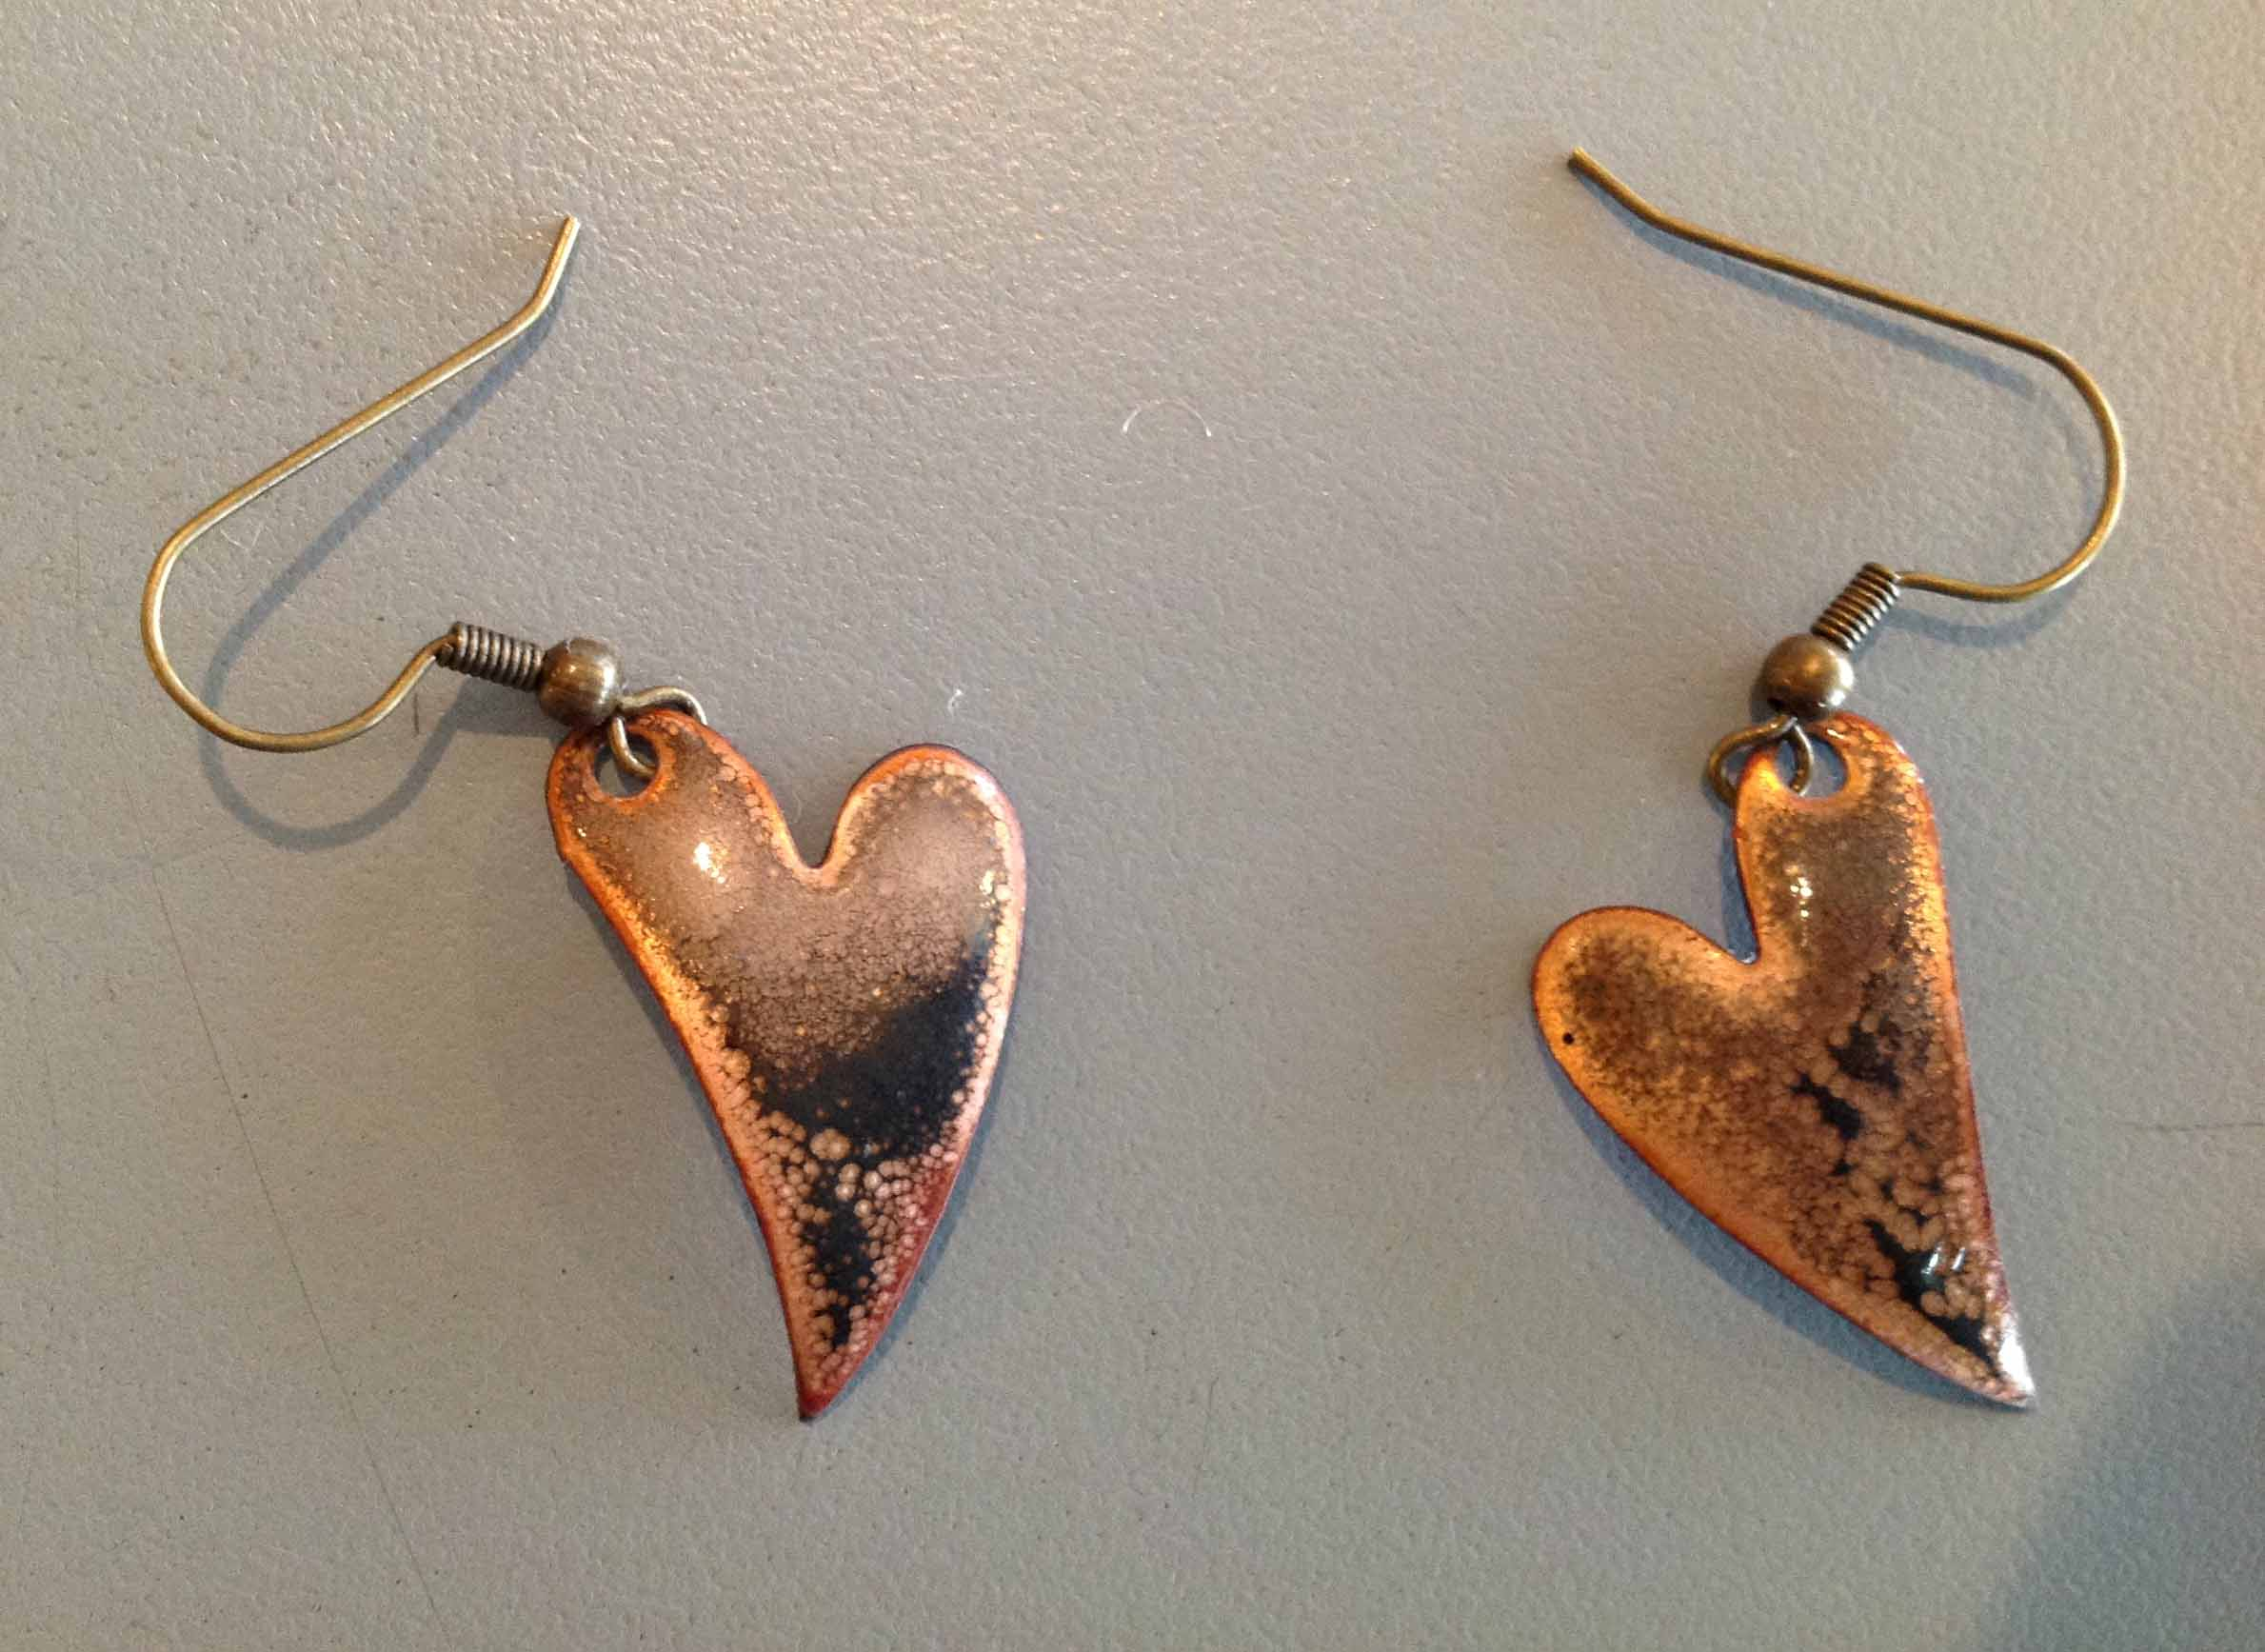 Rustic Copper Hearts - Original Torch Fired Jewelry (One of a Kind) :: $35.00 +shipping